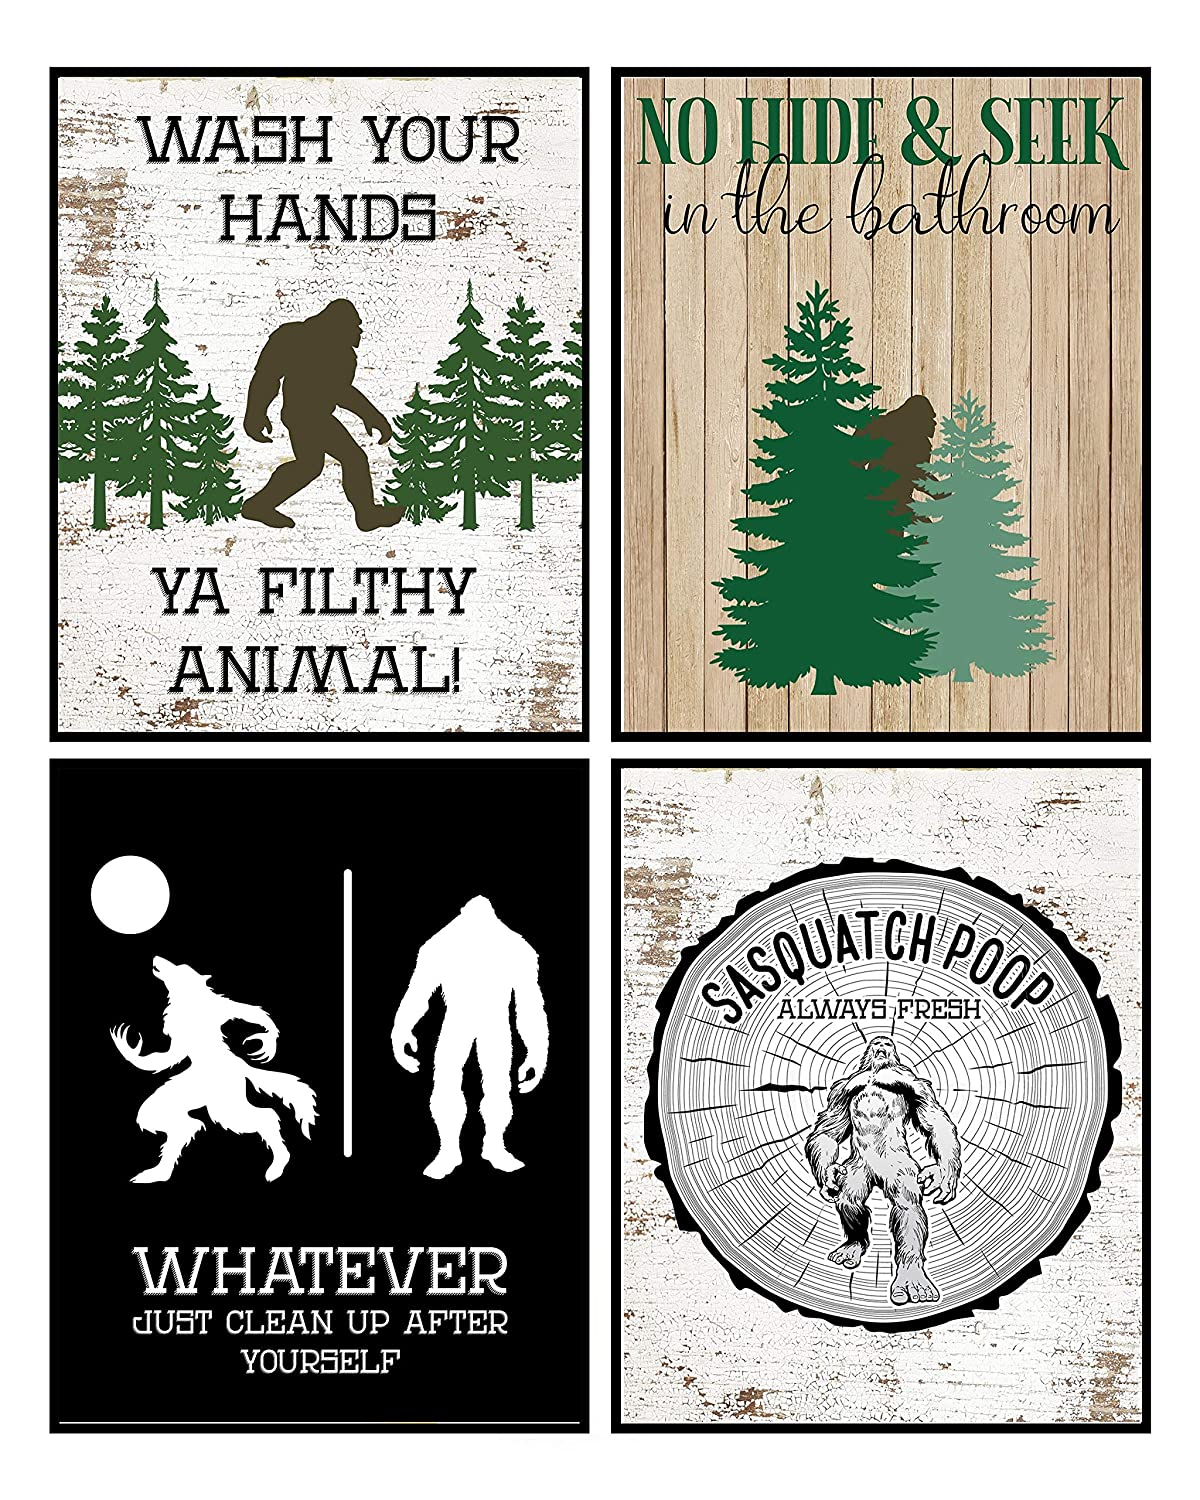 Funny Bigfoot Themed Art Prints Wall Decor Signs Bathroom Christmas Room (Bathroom Set)